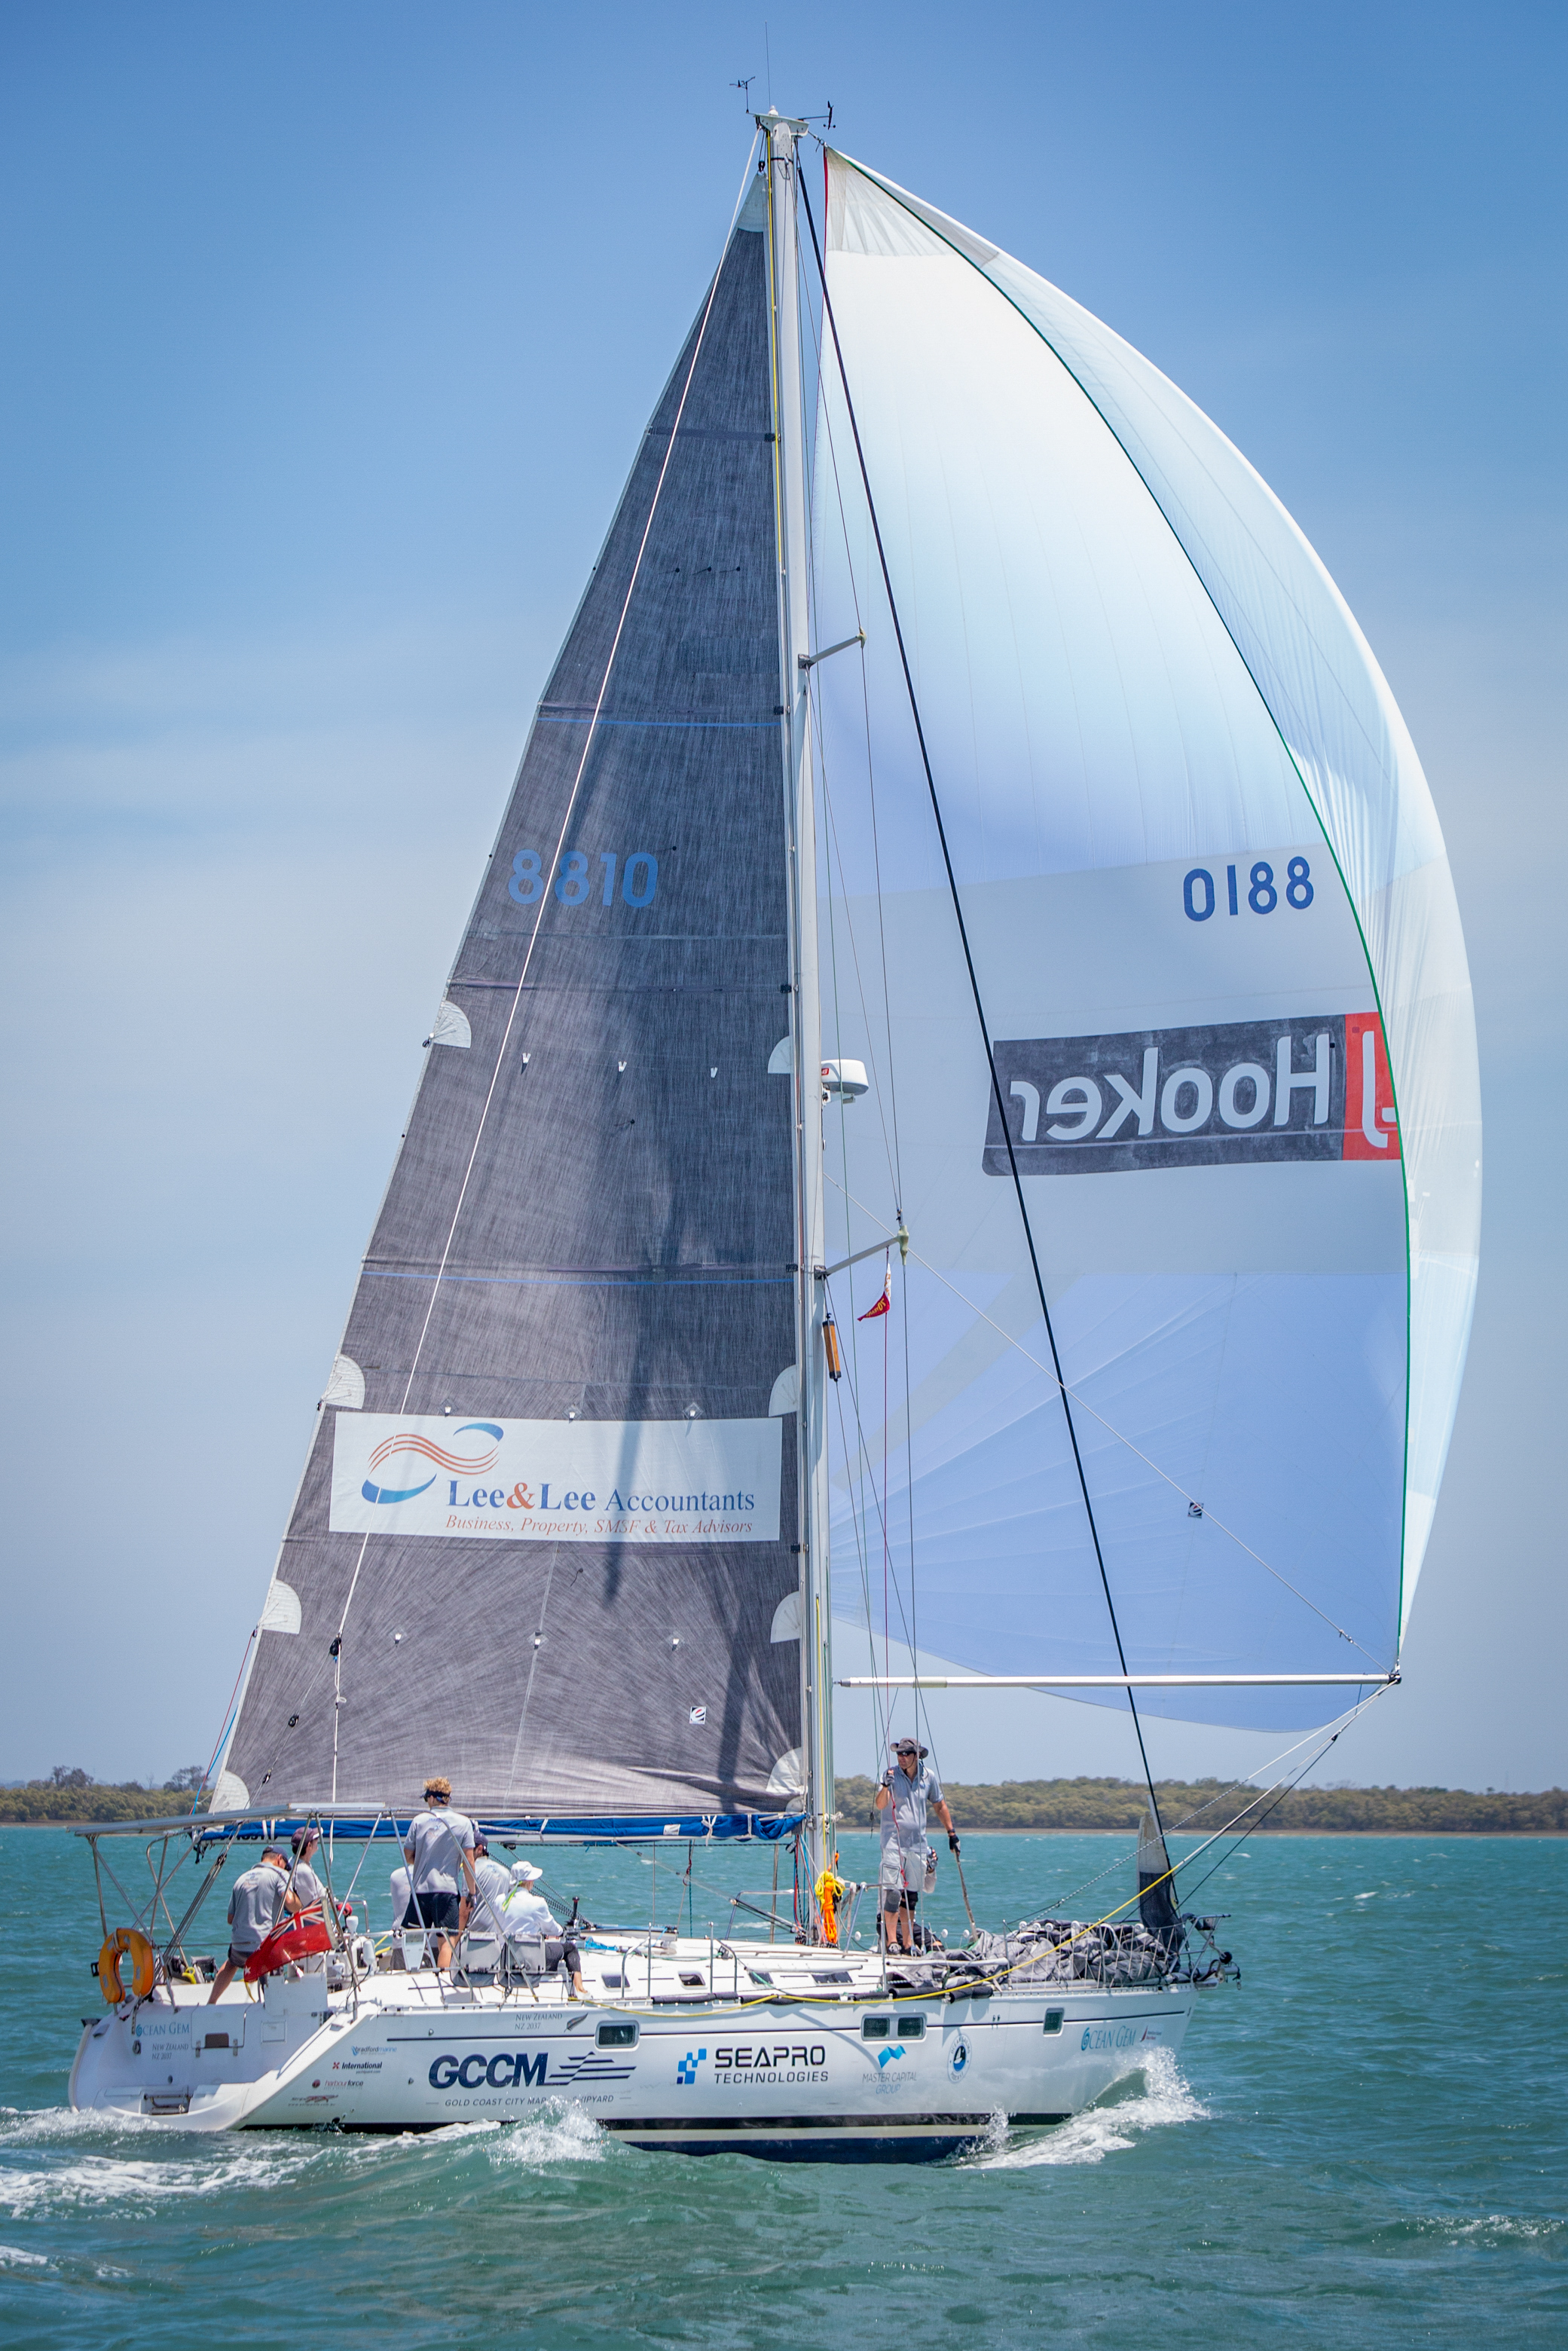 Ocean Gem competing at her 5th Queensland Beneteau Cup in 2018